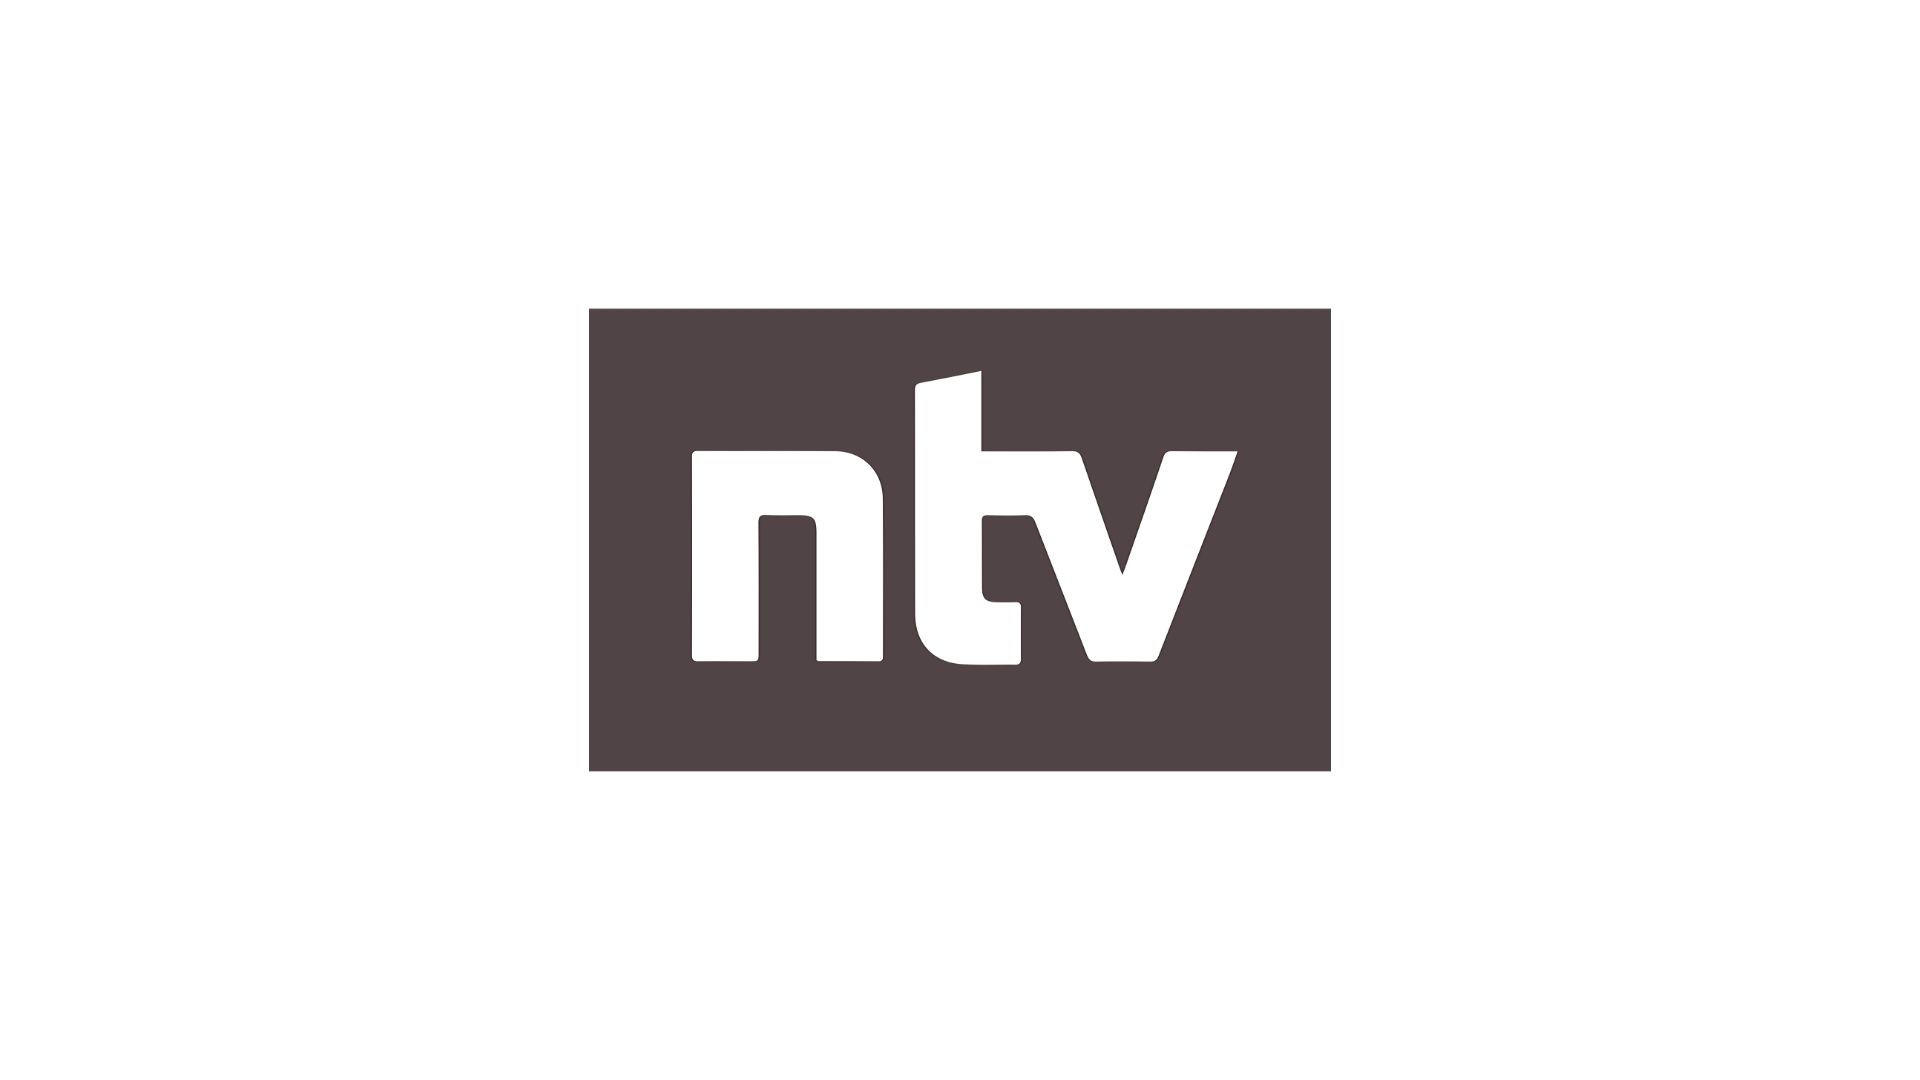 YCF is featured on ntv and many other channels